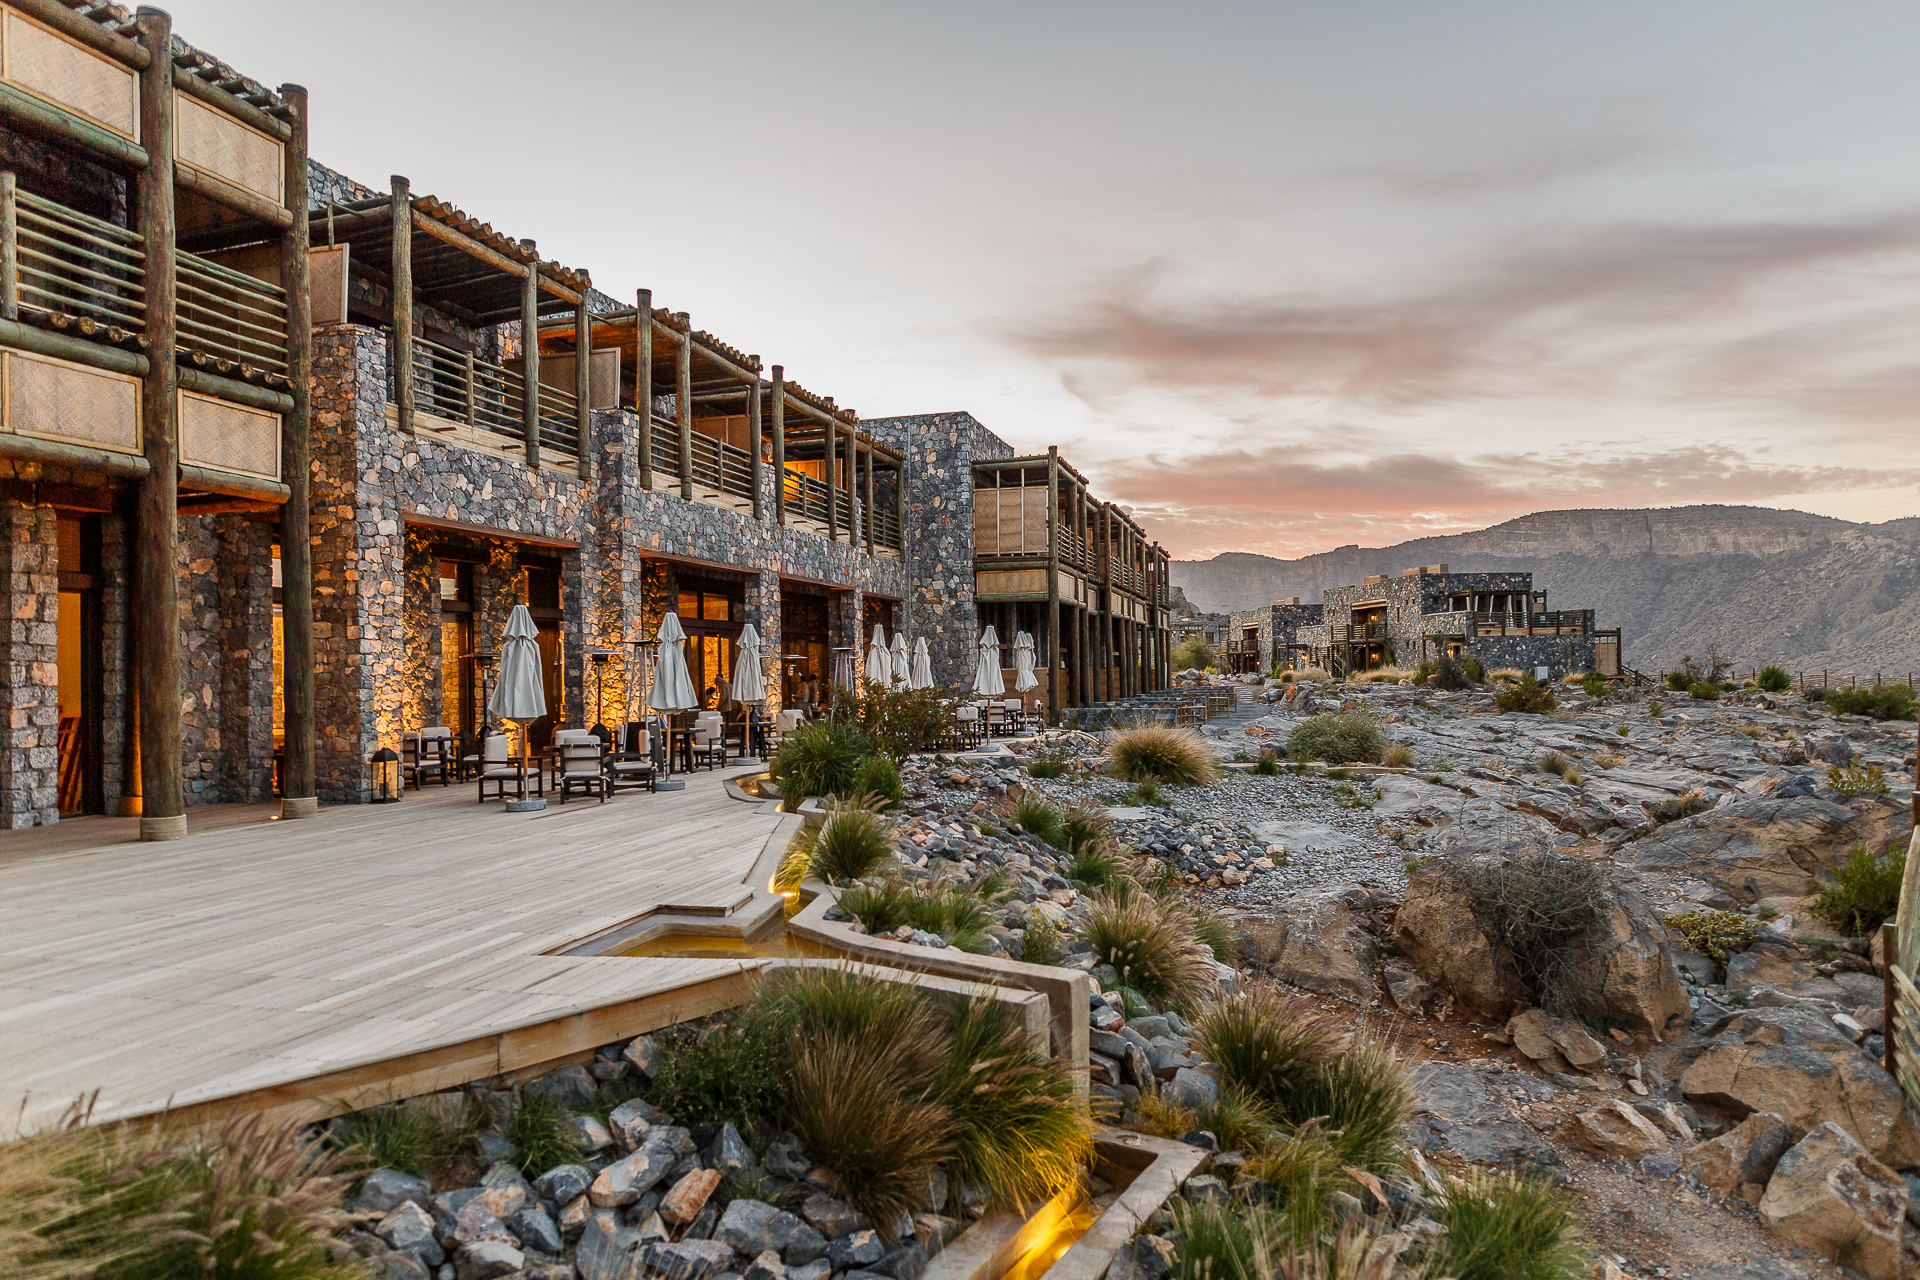 Alila jabal akhdar traumhaftes design hotel im oman for Design hotels 2016